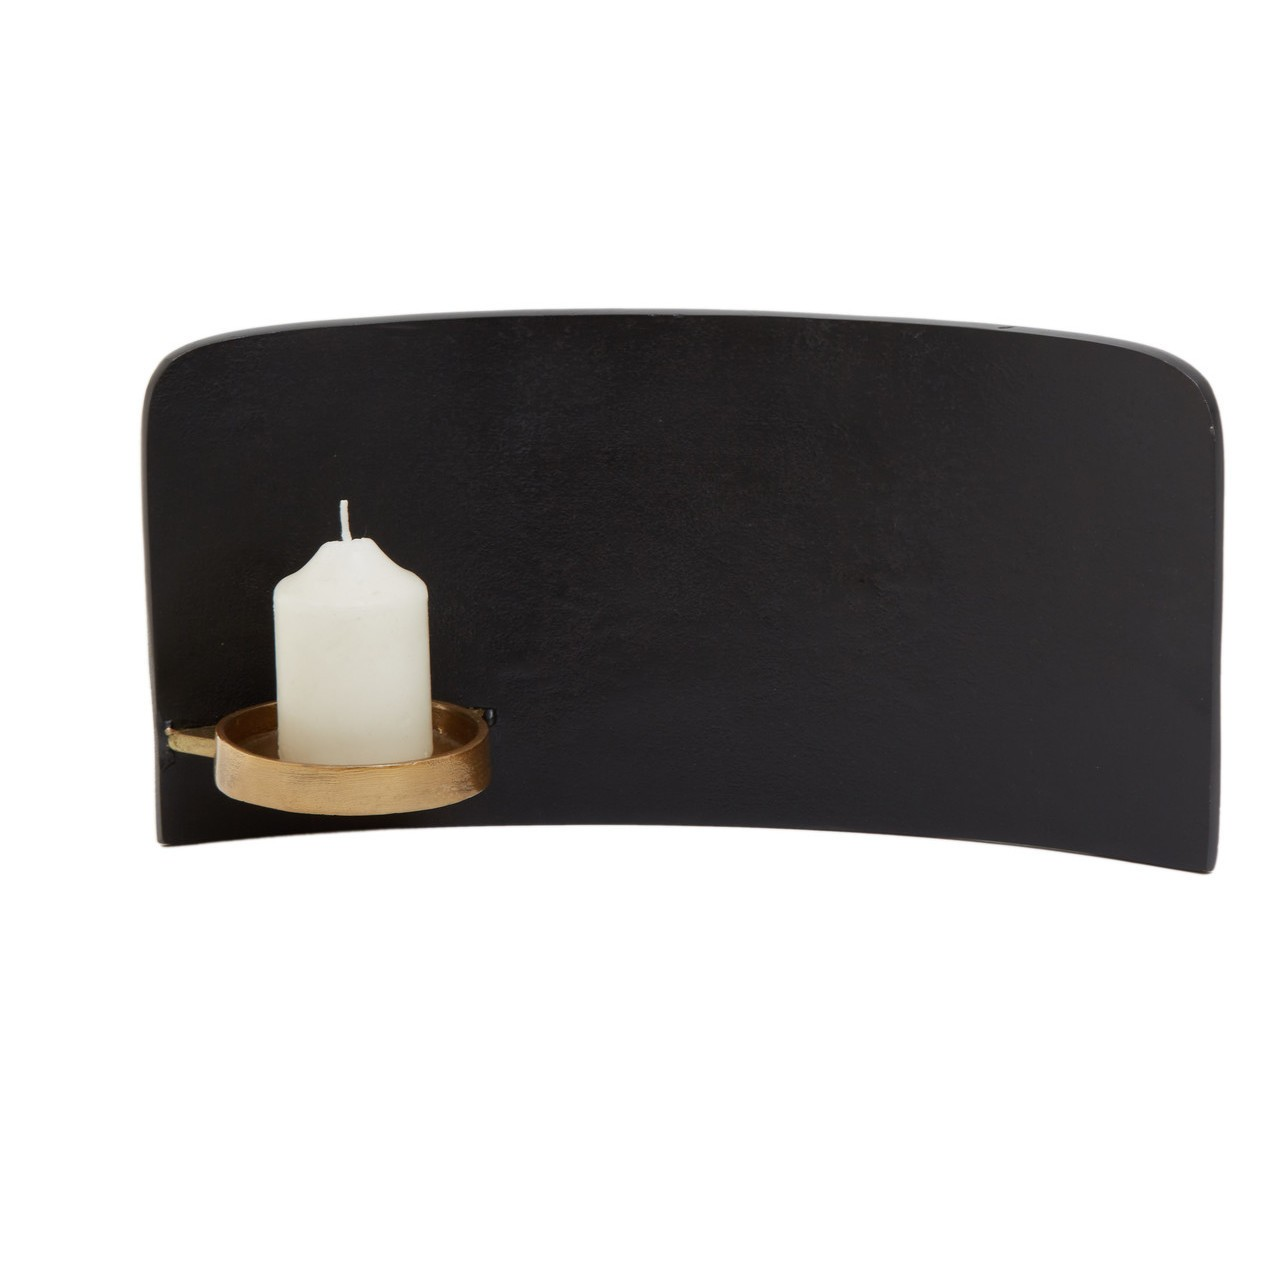 Daito Black Gold Candle Holder